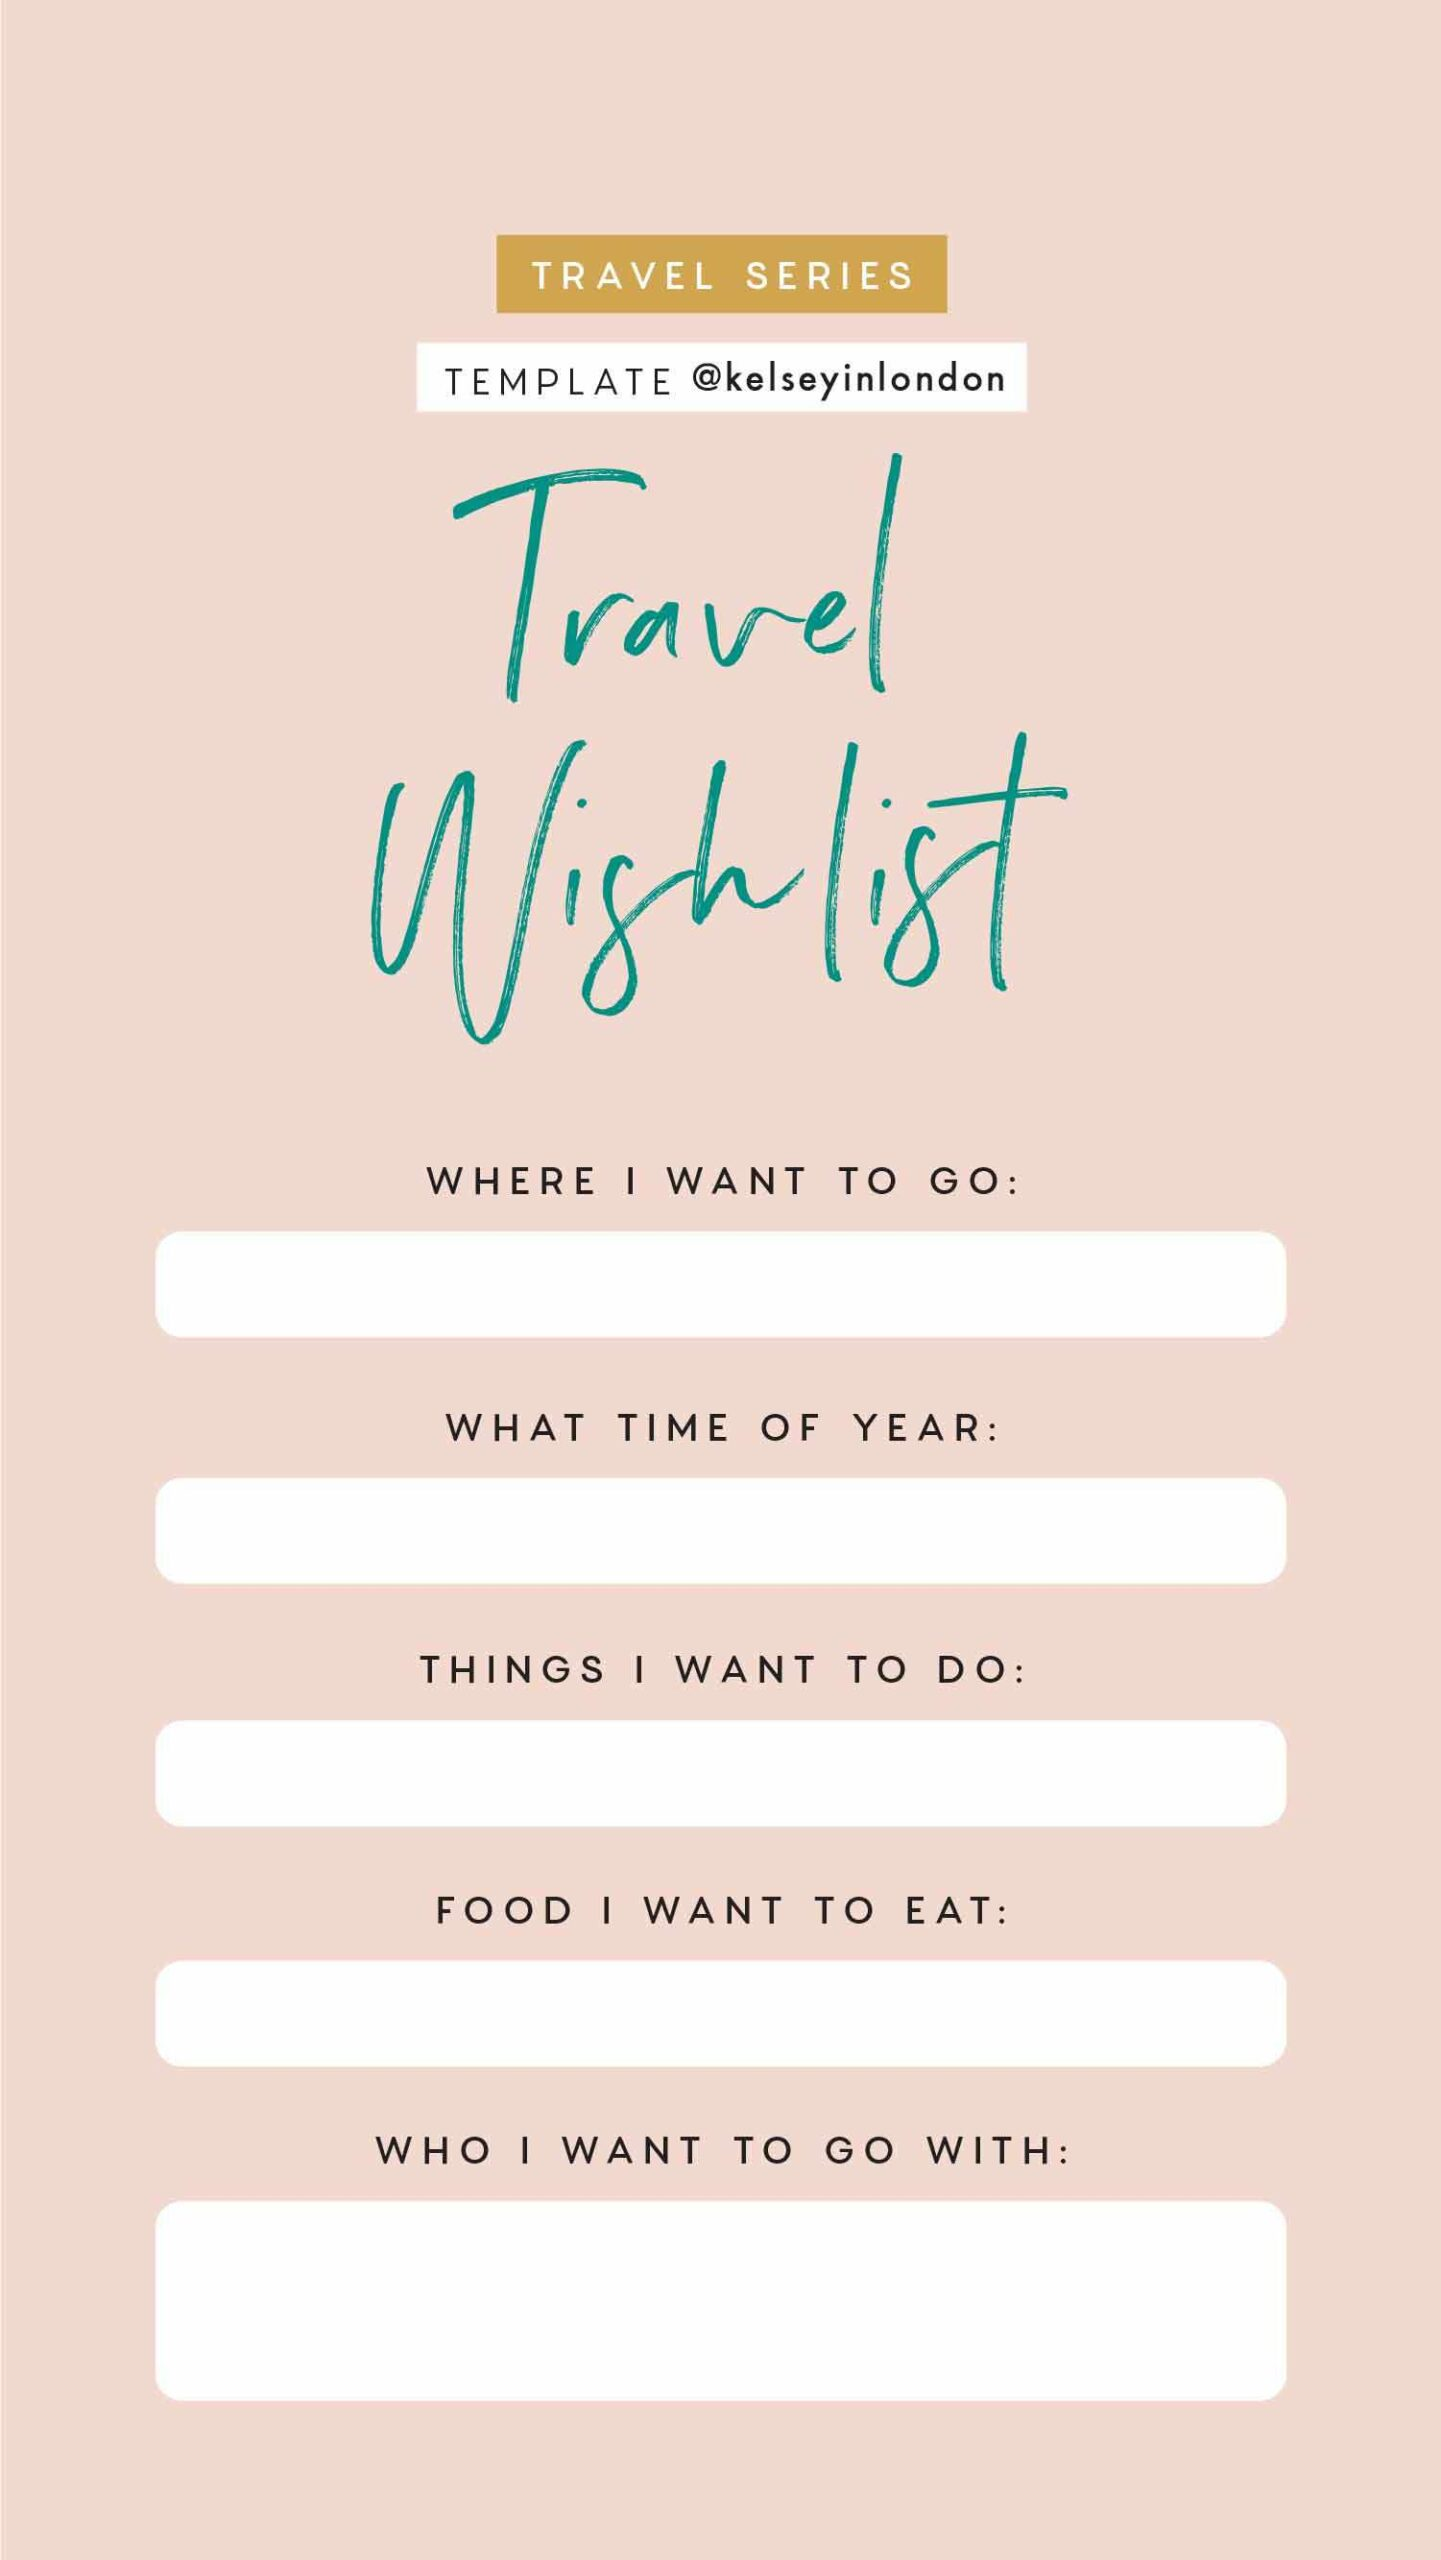 Instagram Story Templates - @kelseyinlondon Kelsey Heinrichs Travel bucket lists travel this or that travel quiz 7